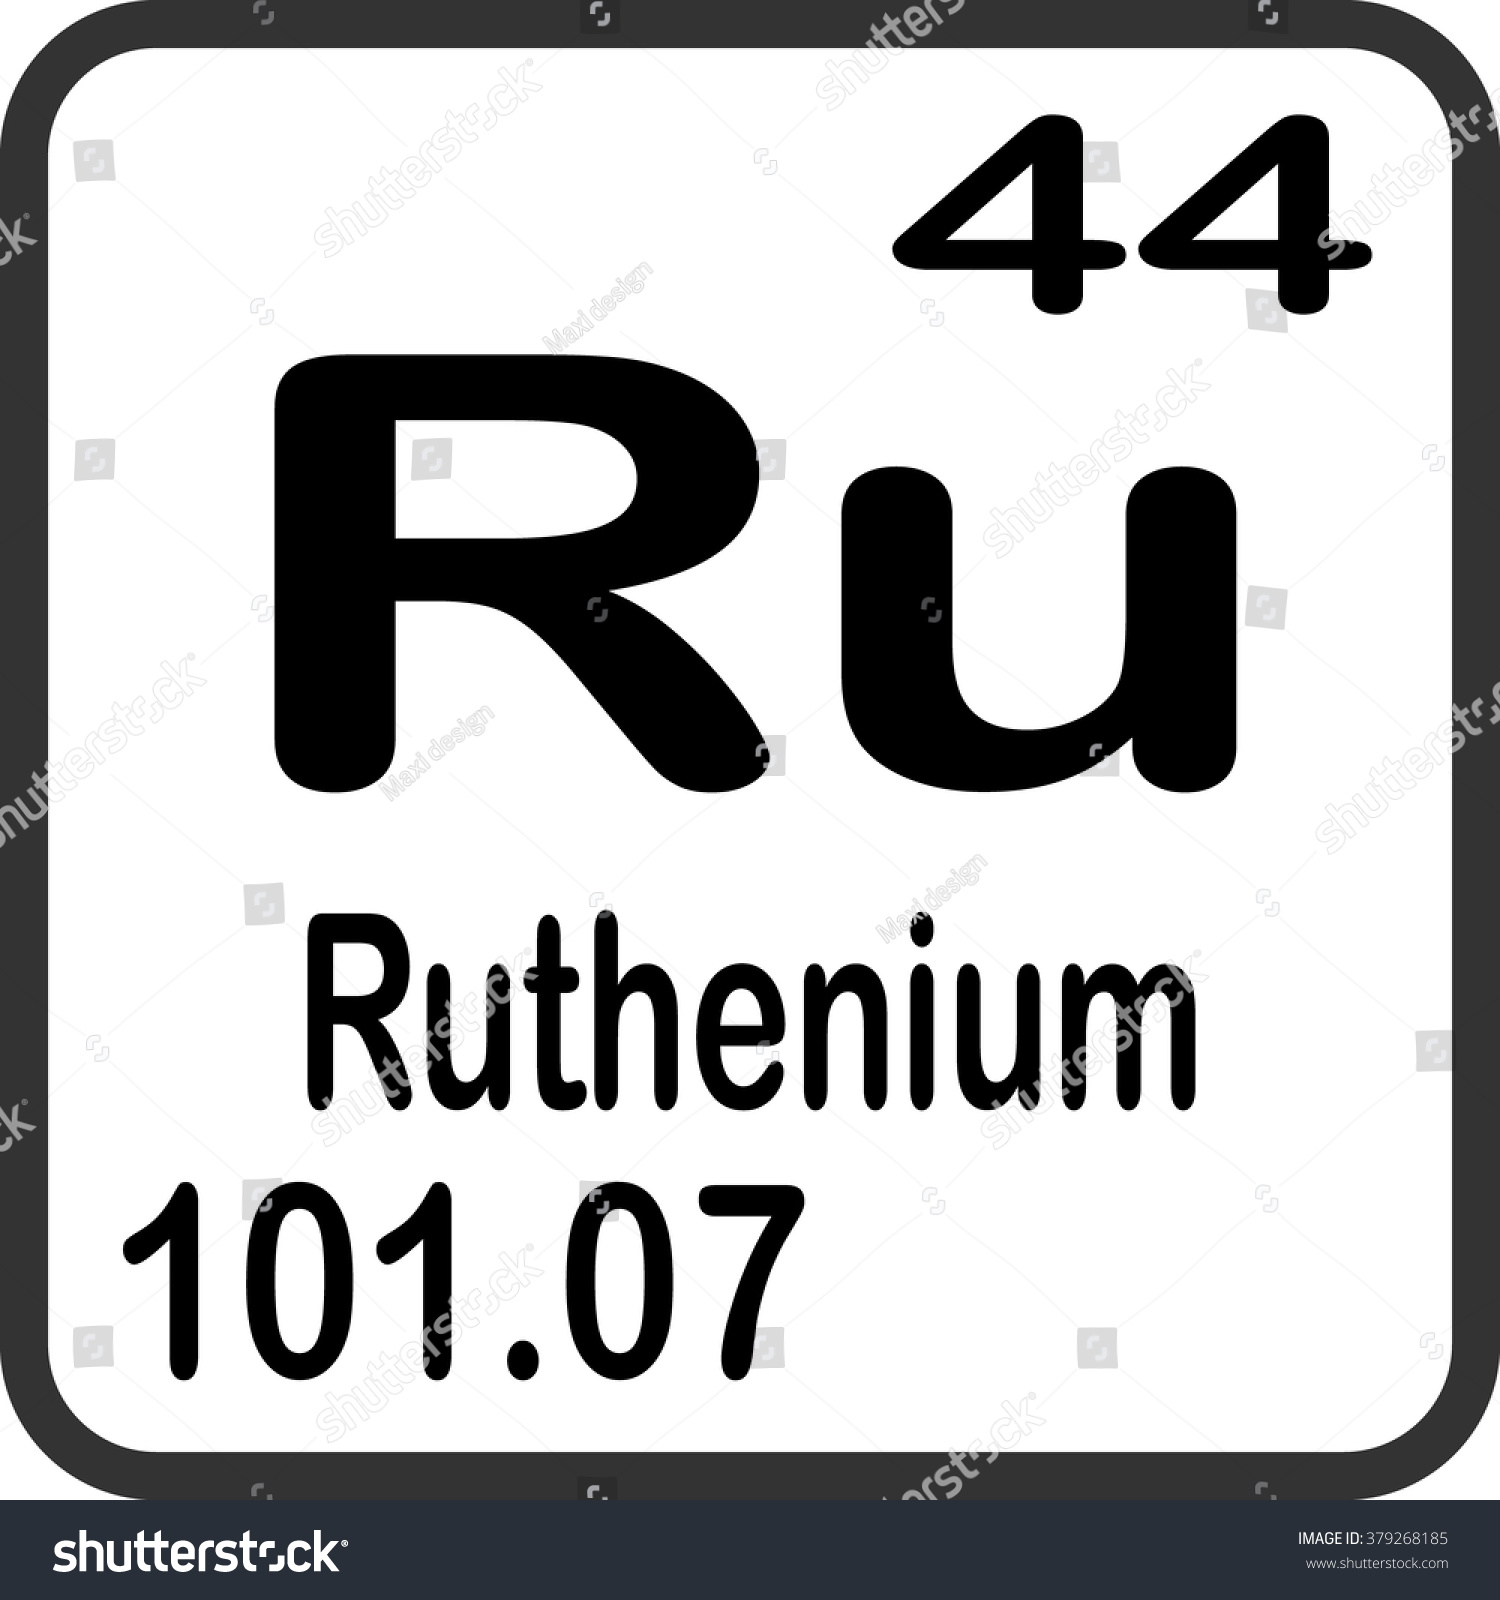 Periodic table elements ruthenium stock vector 379268185 periodic table of elements ruthenium gamestrikefo Choice Image